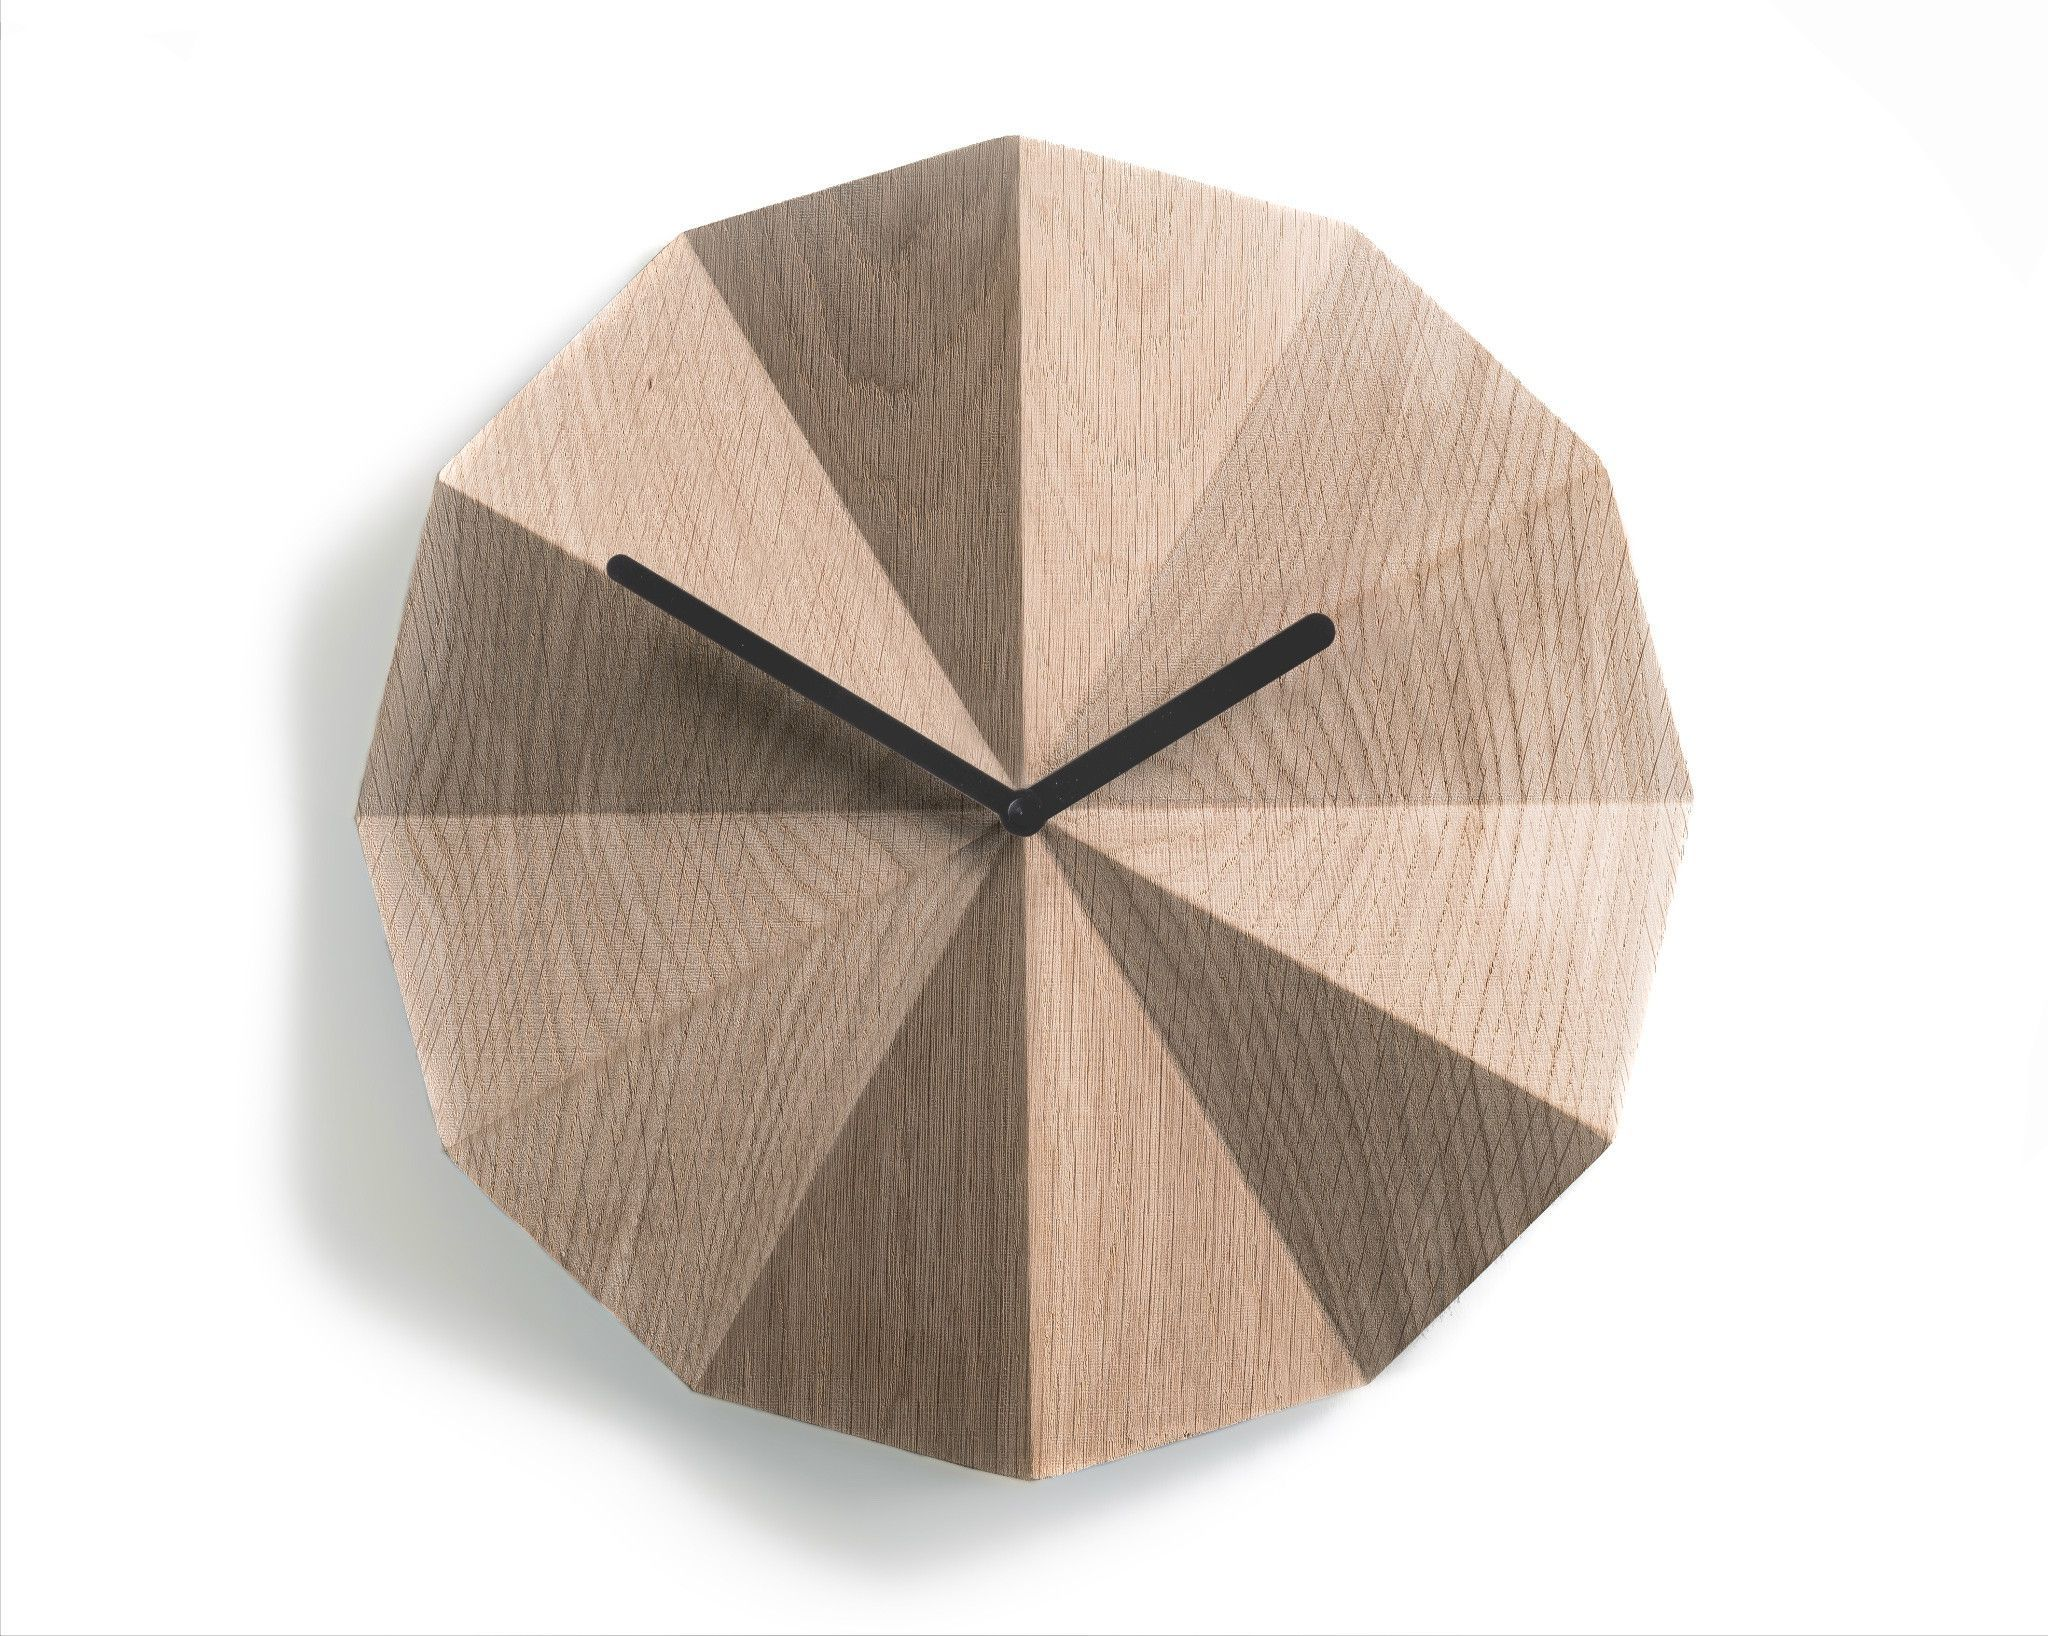 Delta Wall Clock By Lawa Design 11 Inch Solid Oak Wood Clock Wall Clock Wall Clock Modern